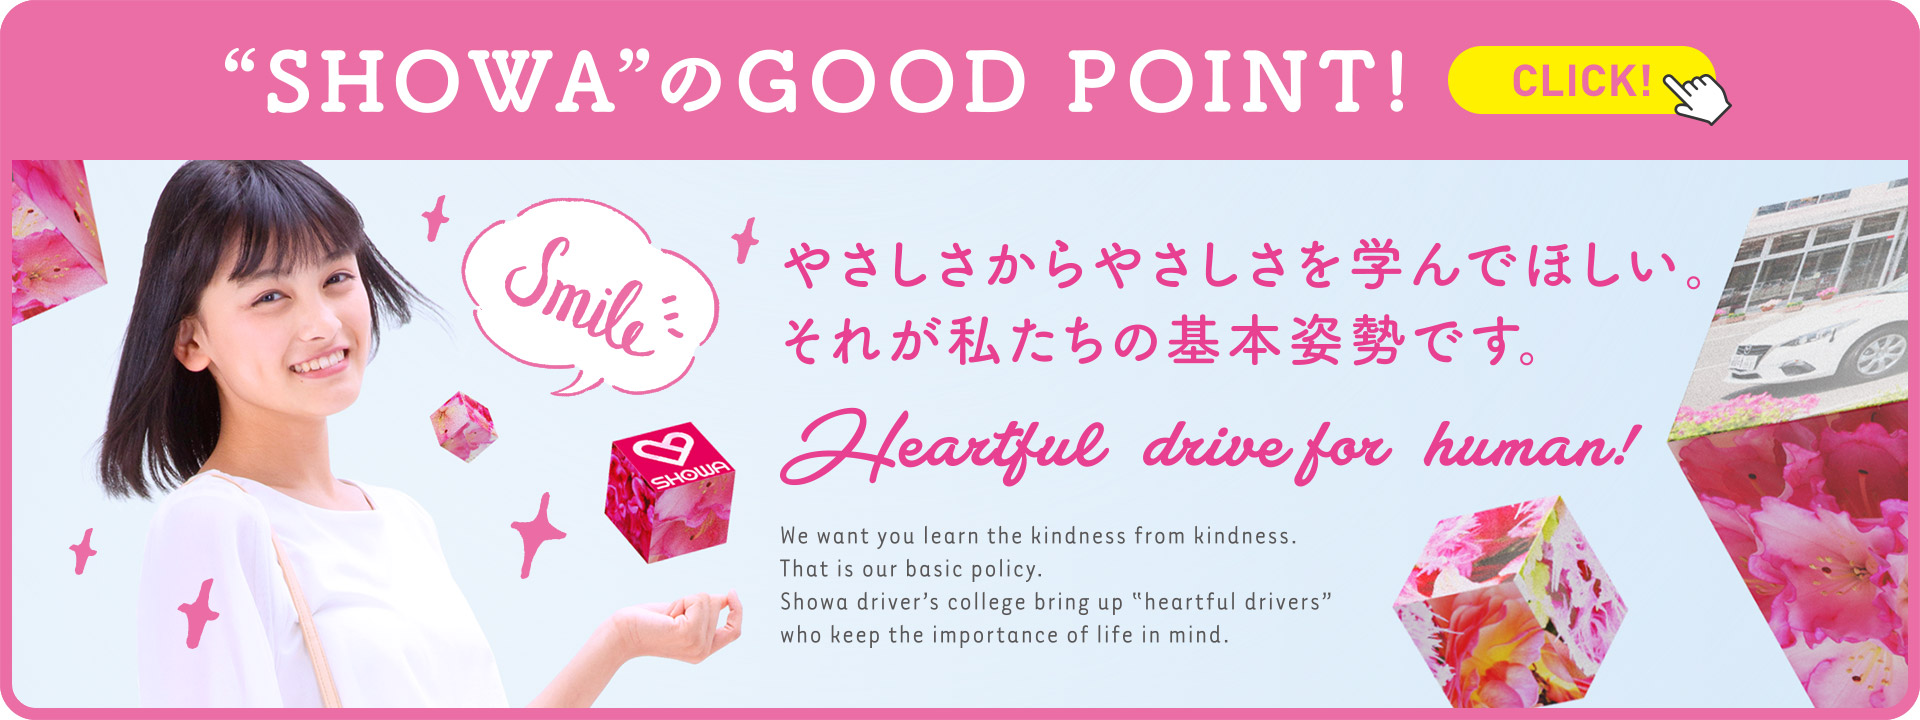 SHOWAのGOOD POINT!